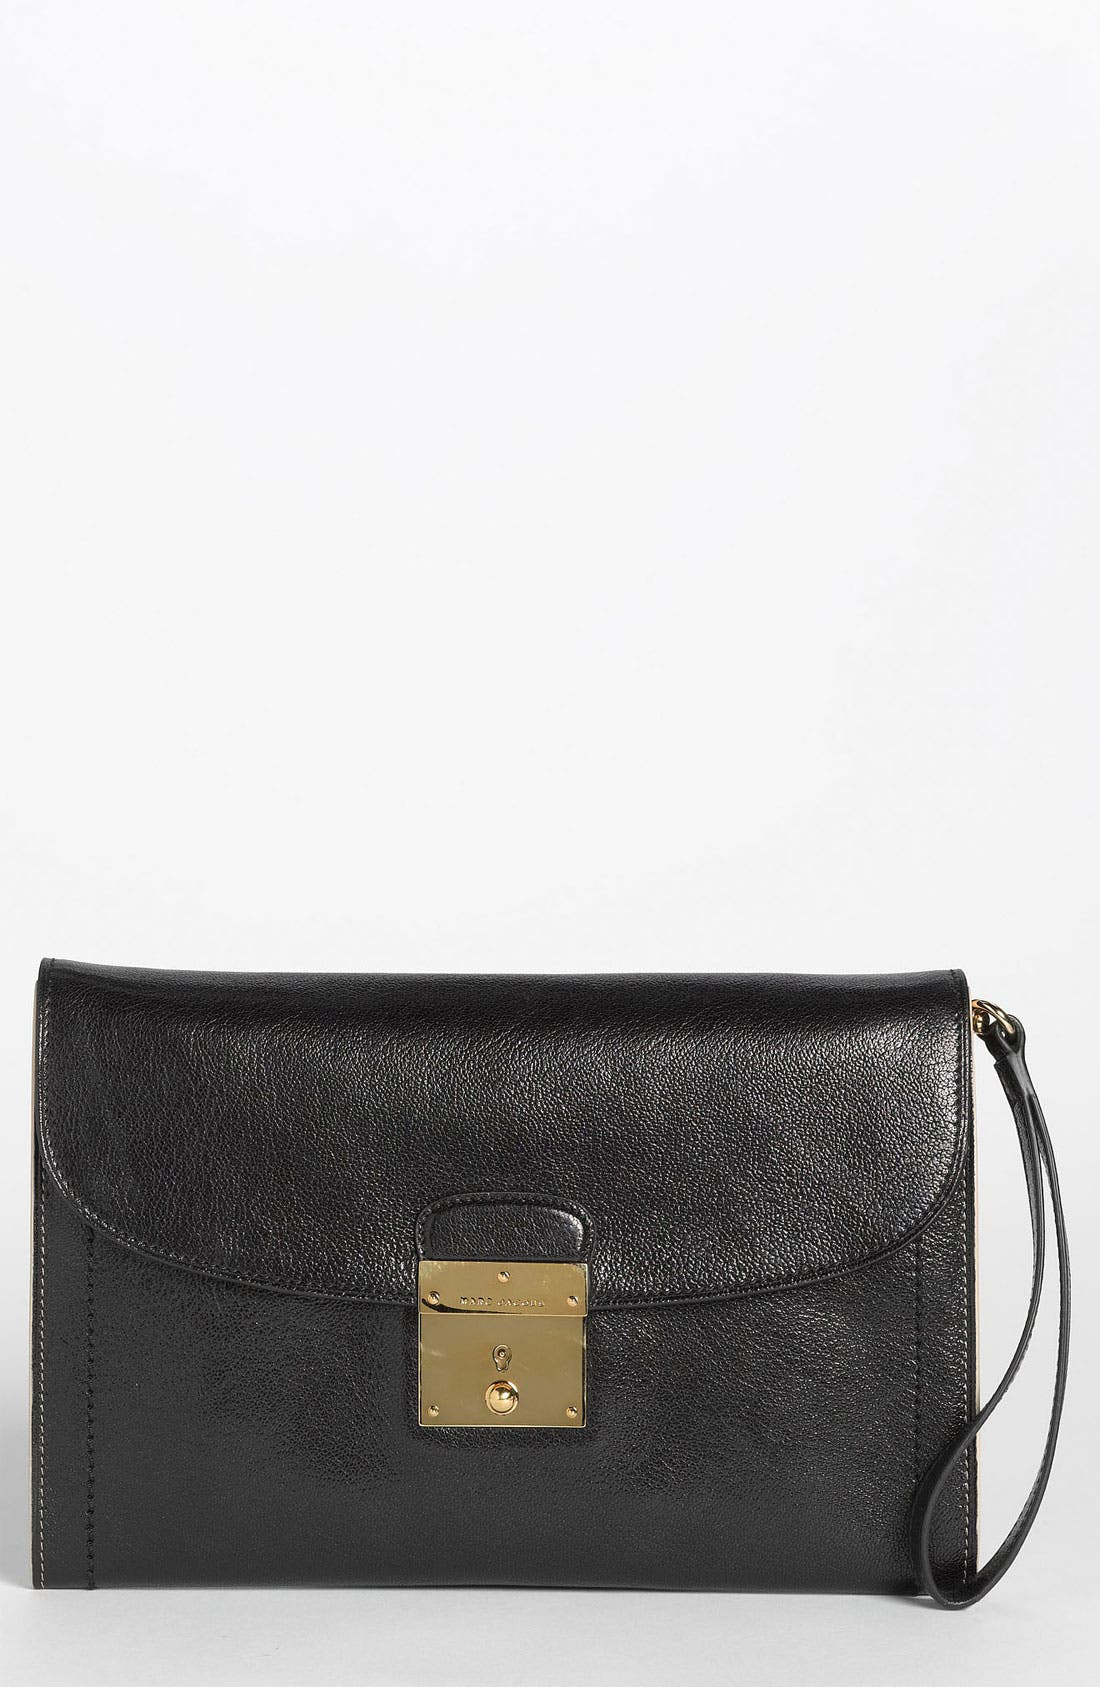 Alternate Image 1 Selected - MARC JACOBS '1984 Isobel' Leather Clutch